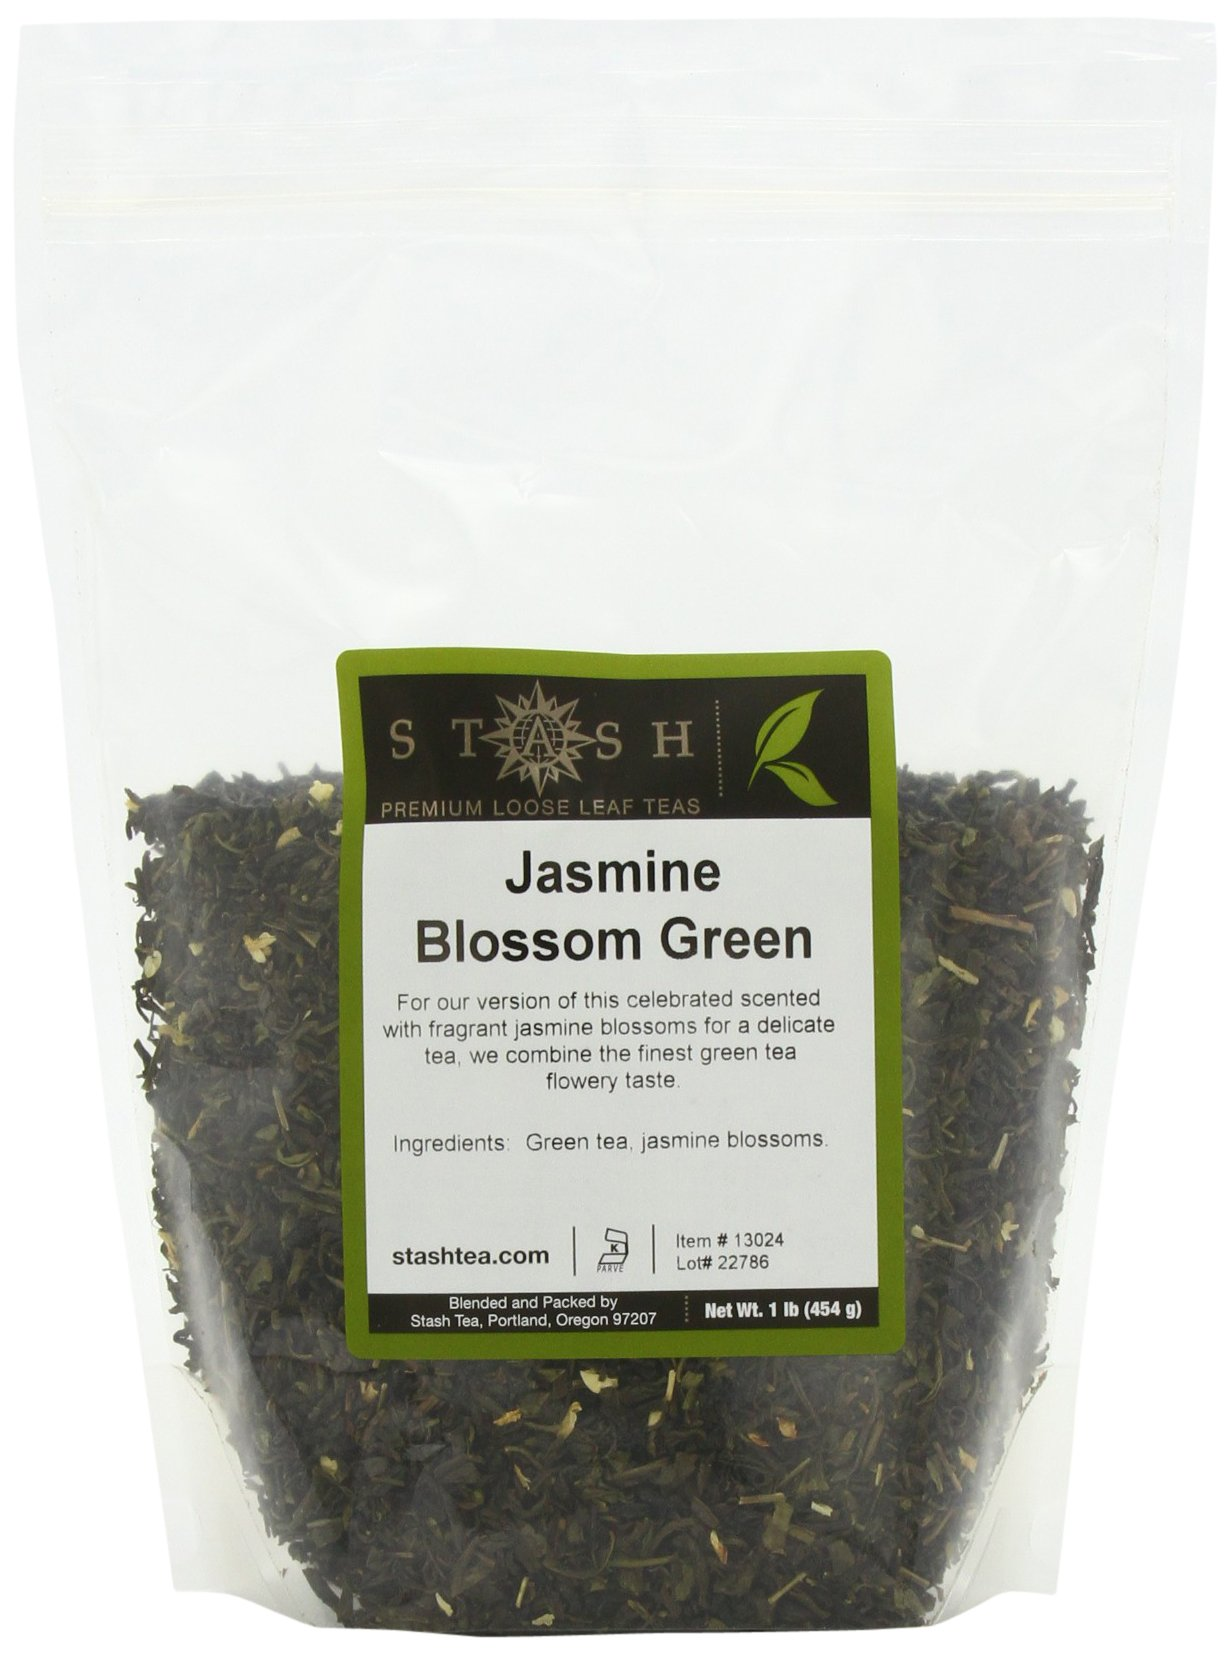 Stash Tea Jasmine Blossom Loose Leaf Tea, 16 Ounce Pouch